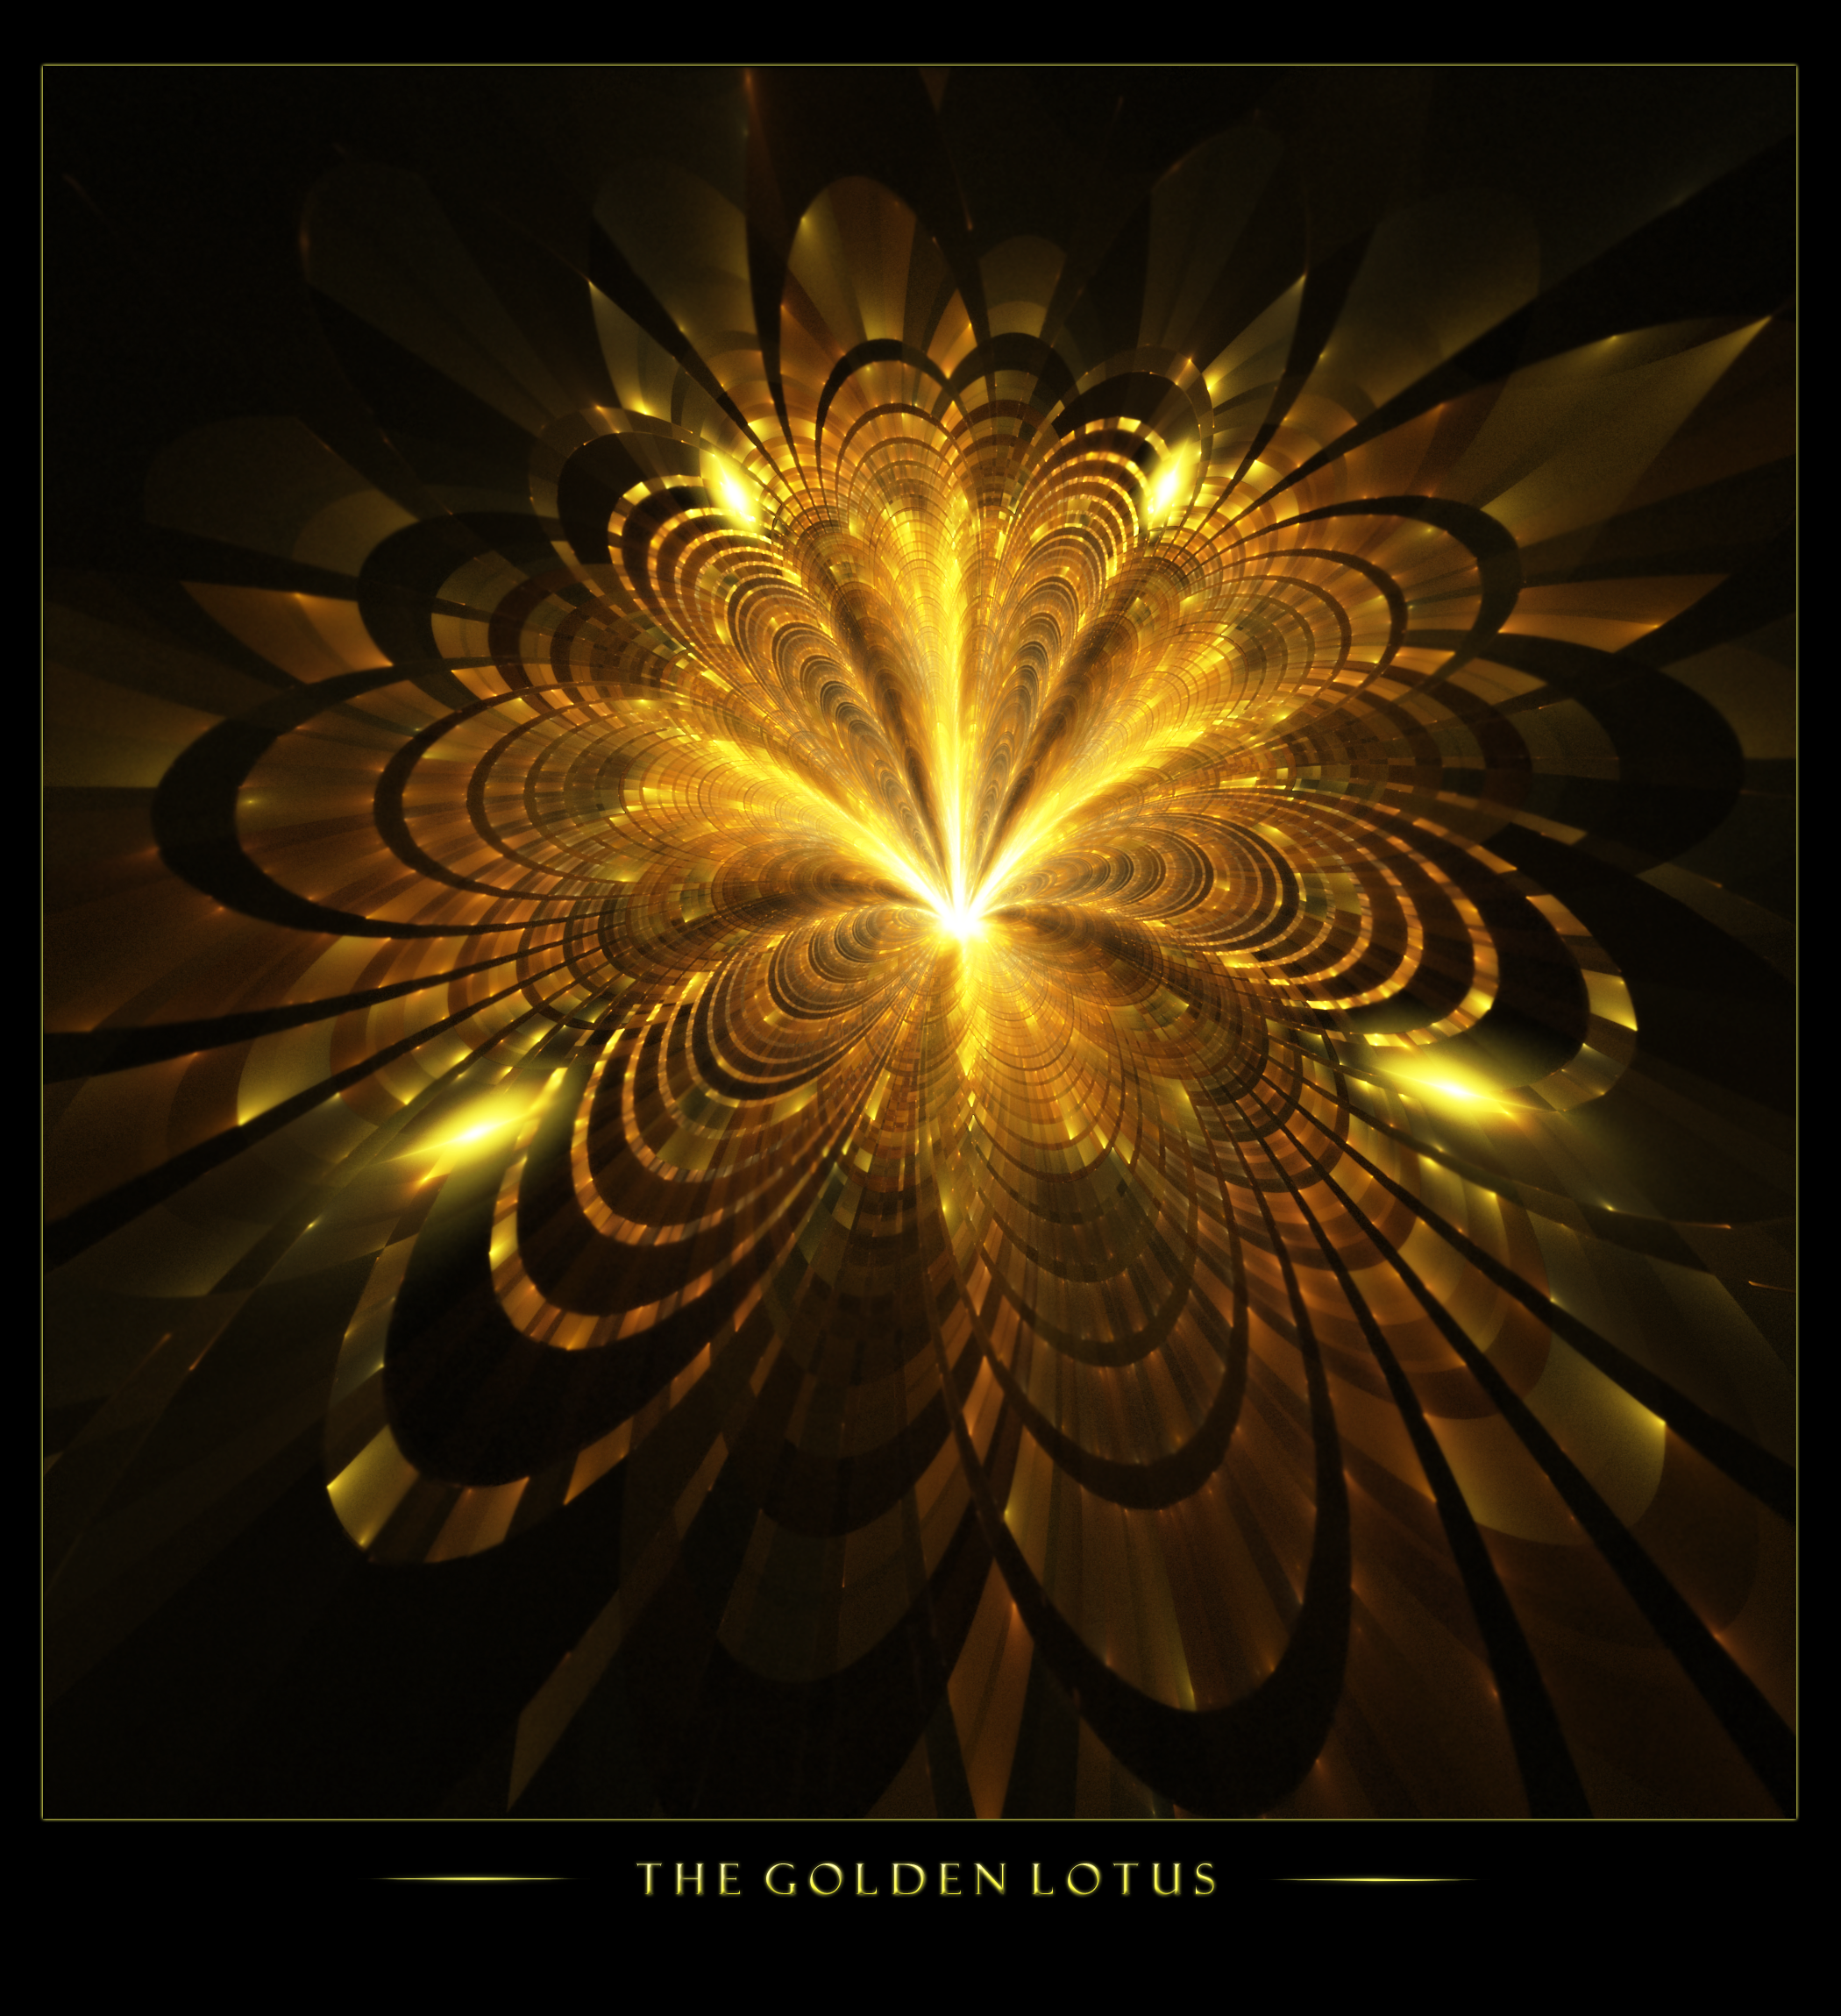 The Golden Lotus